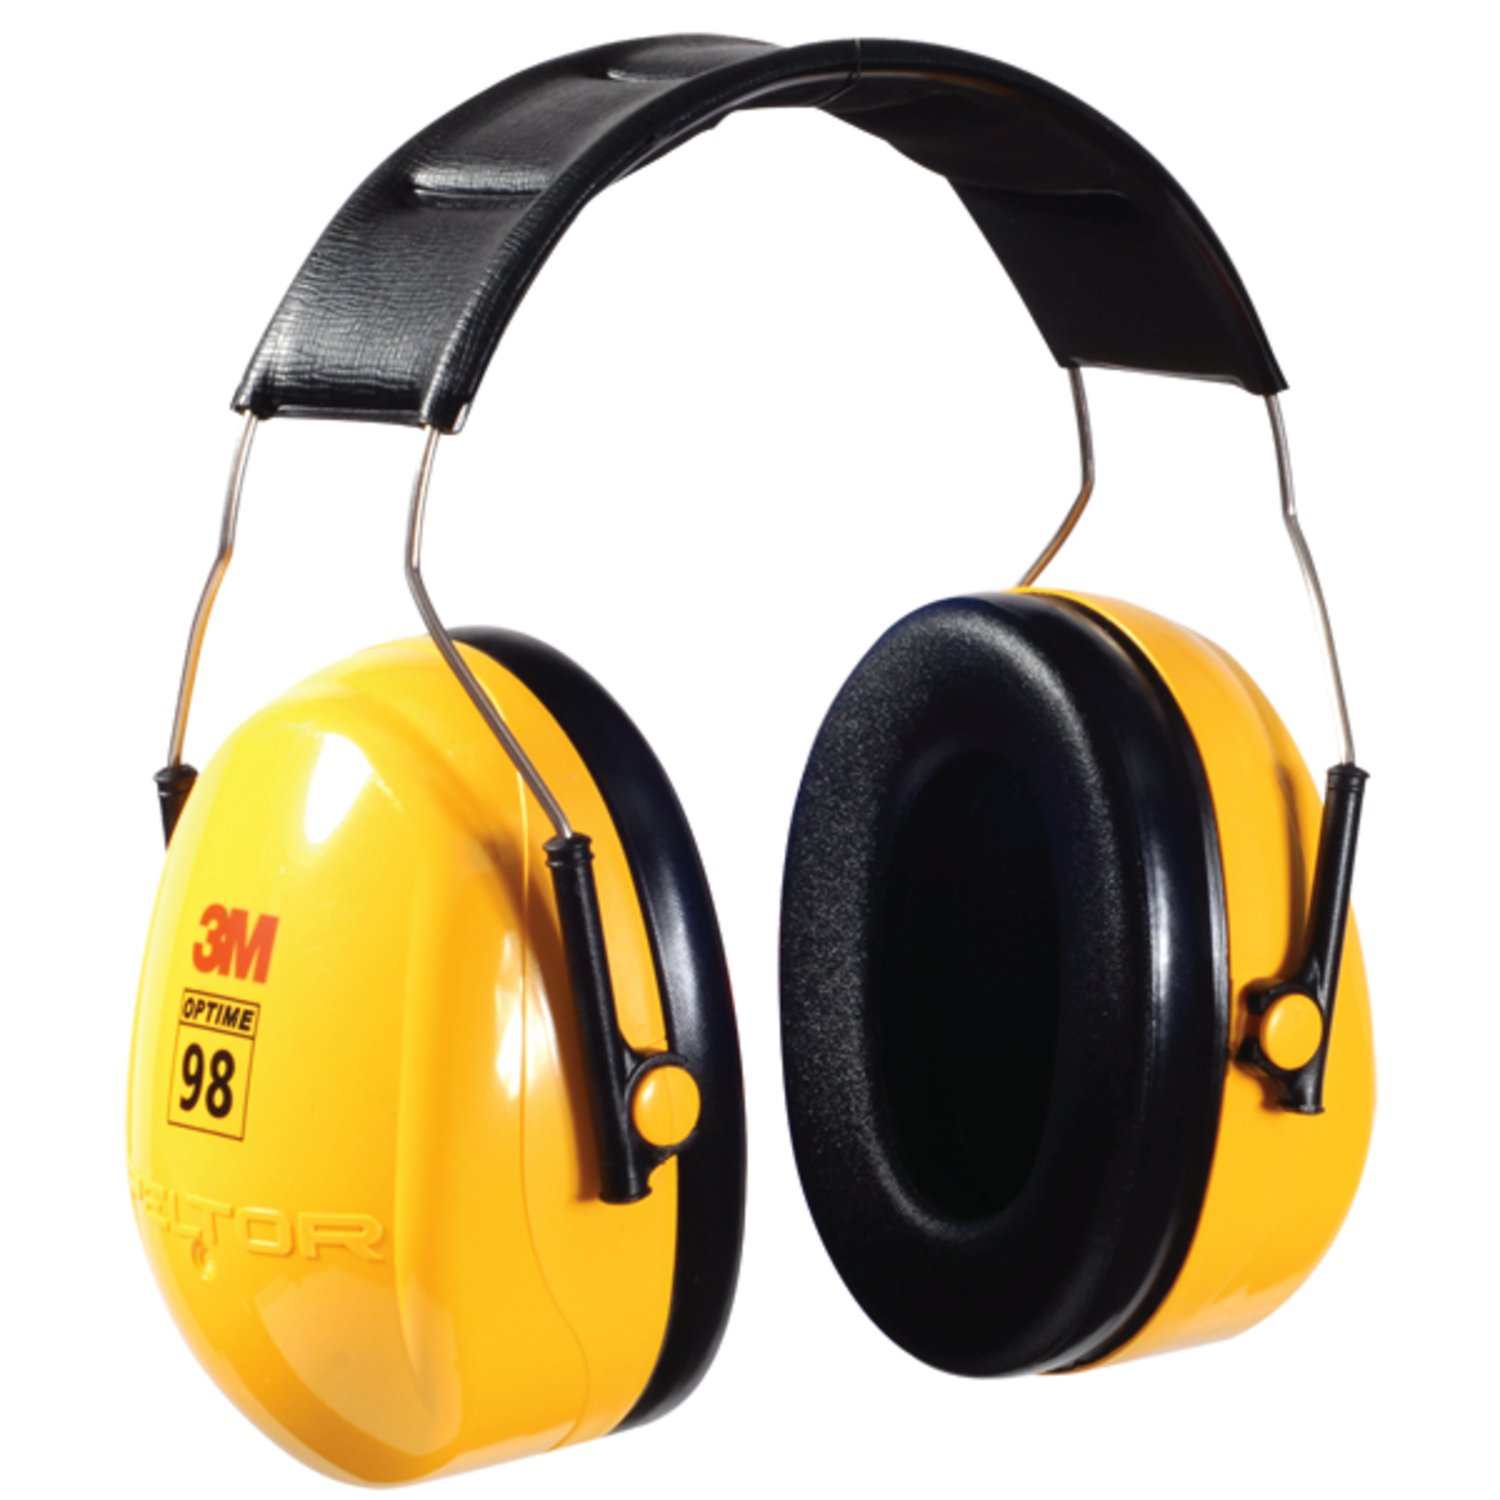 3m peltor optime 98 over the head earmuffs 3m h9a for A and m salon equipment